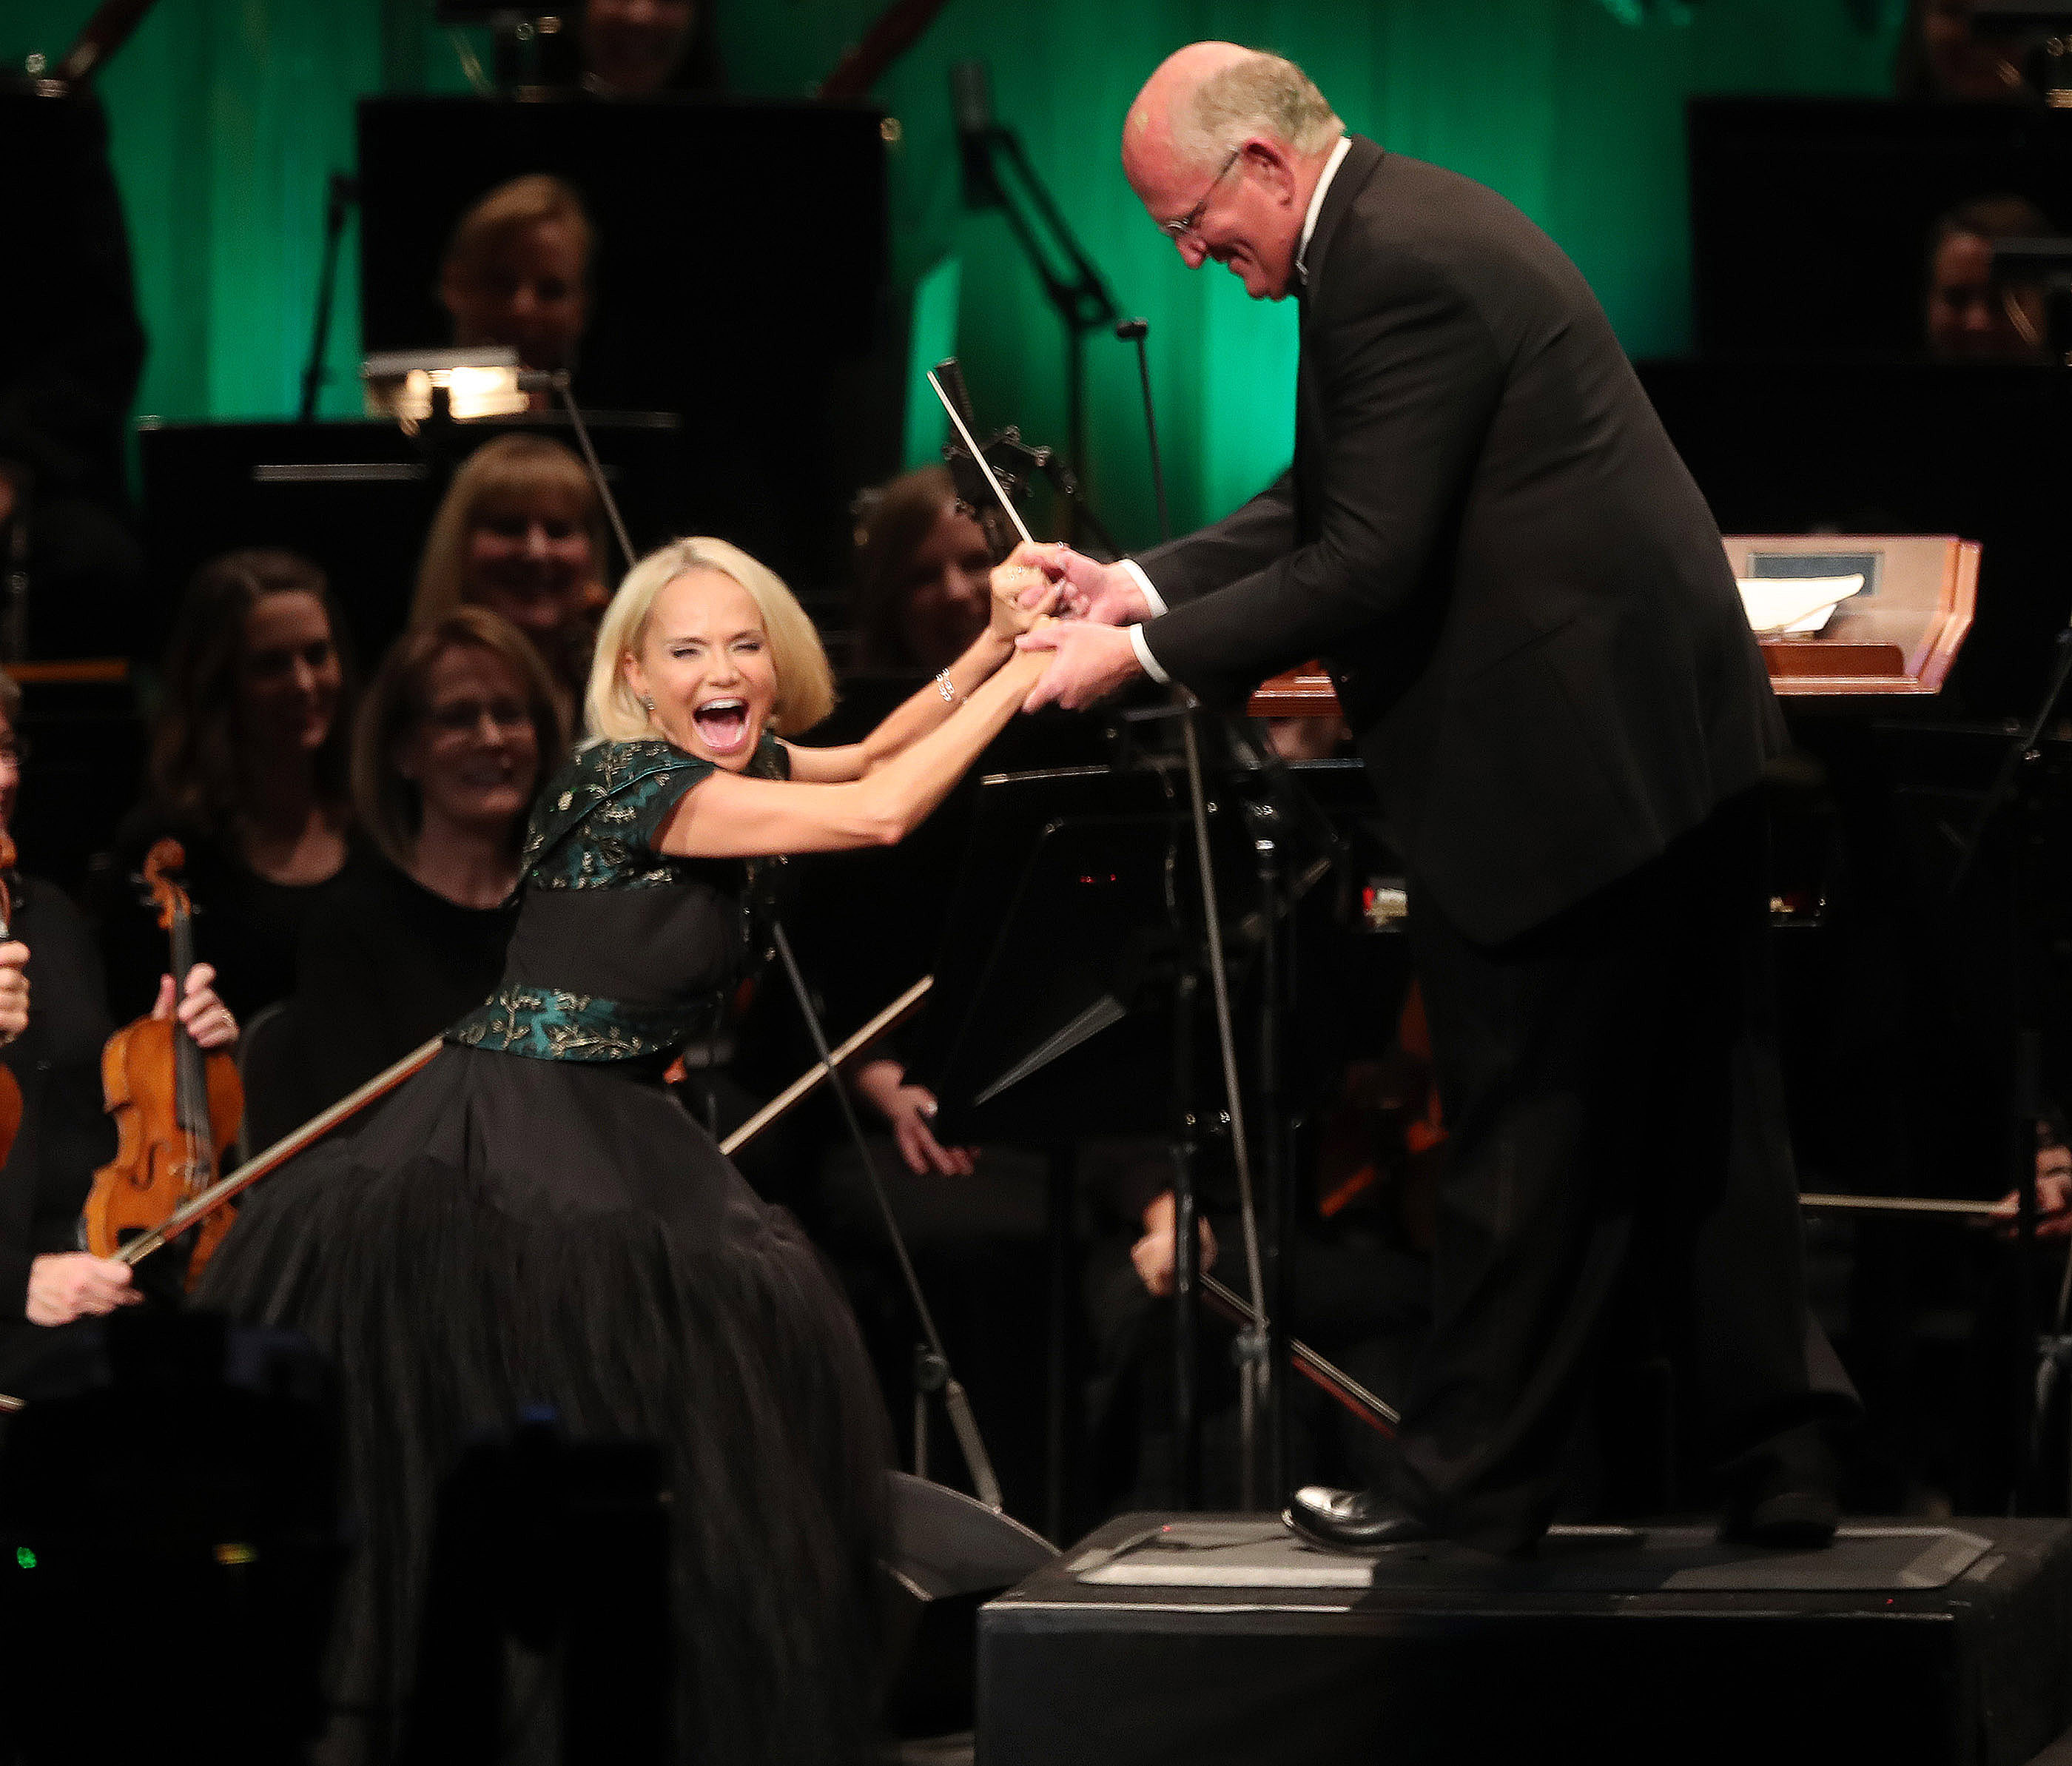 Kristin Chenoweth jokes with conductor Mack Wilberg while singing with the Tabernacle Choir at Temple Square during their opening Christmas concert at the Conference Center in Salt Lake City on Thursday, Dec. 13, 2018.